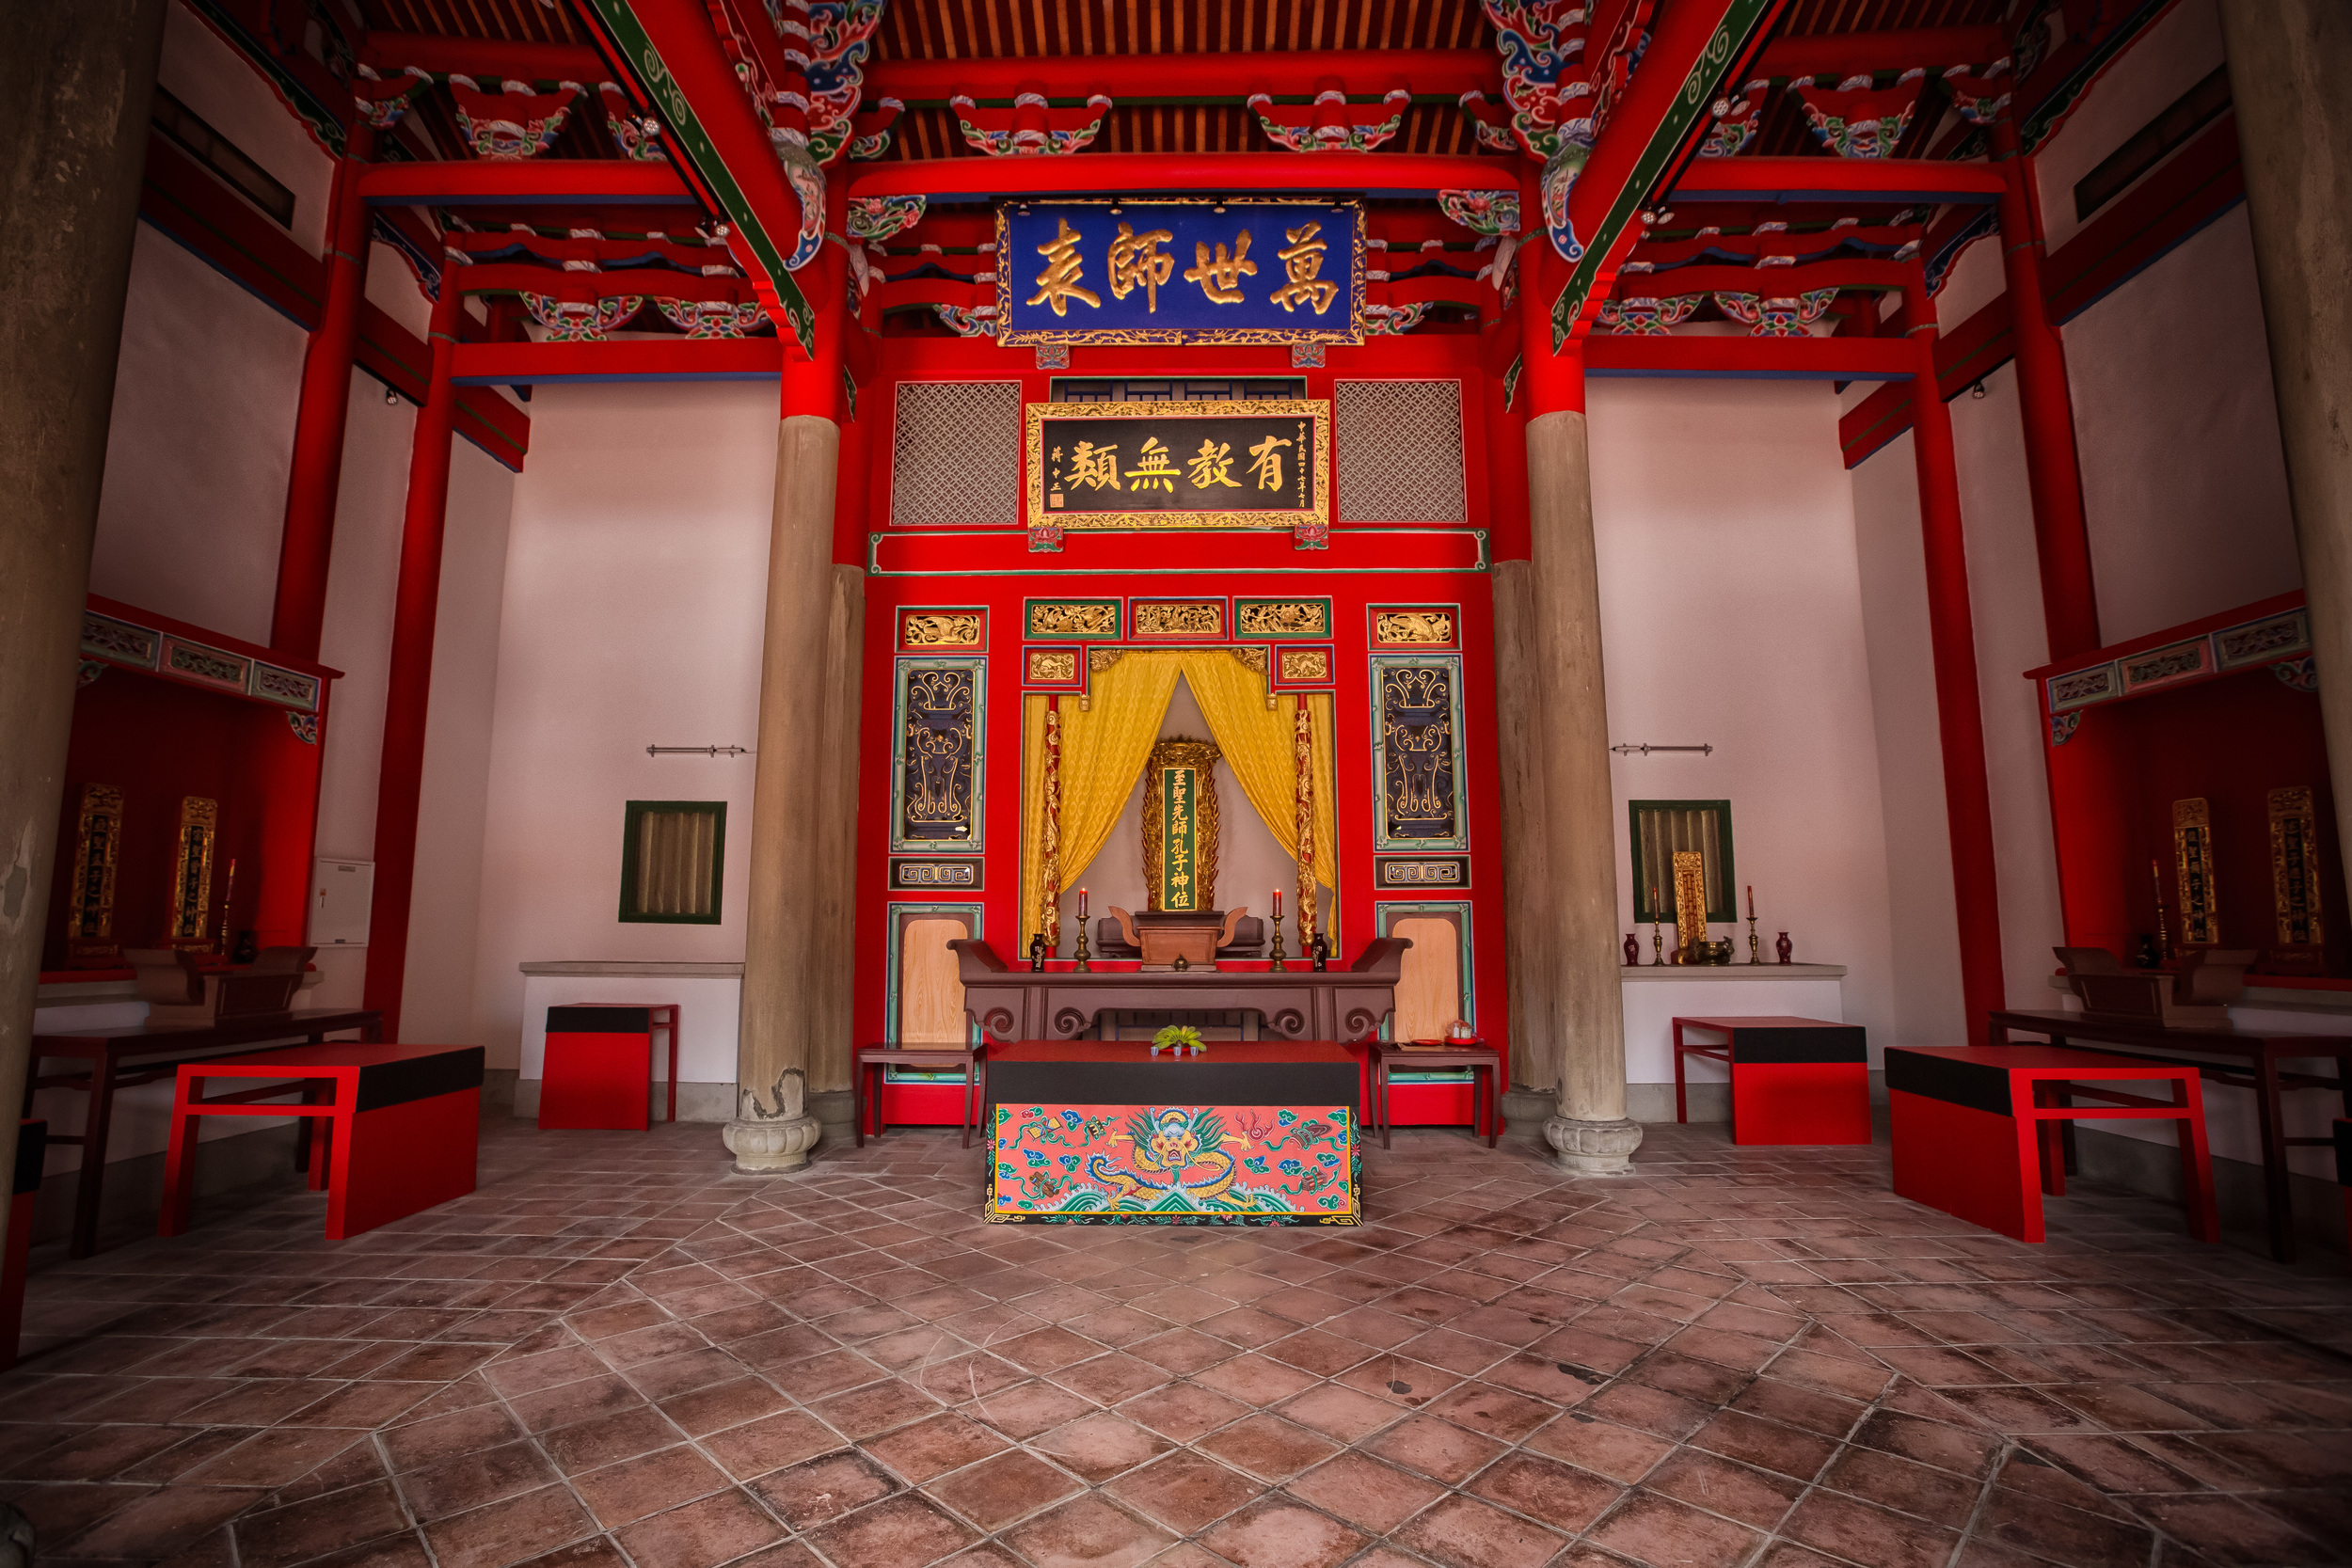 The Main Shrine Room